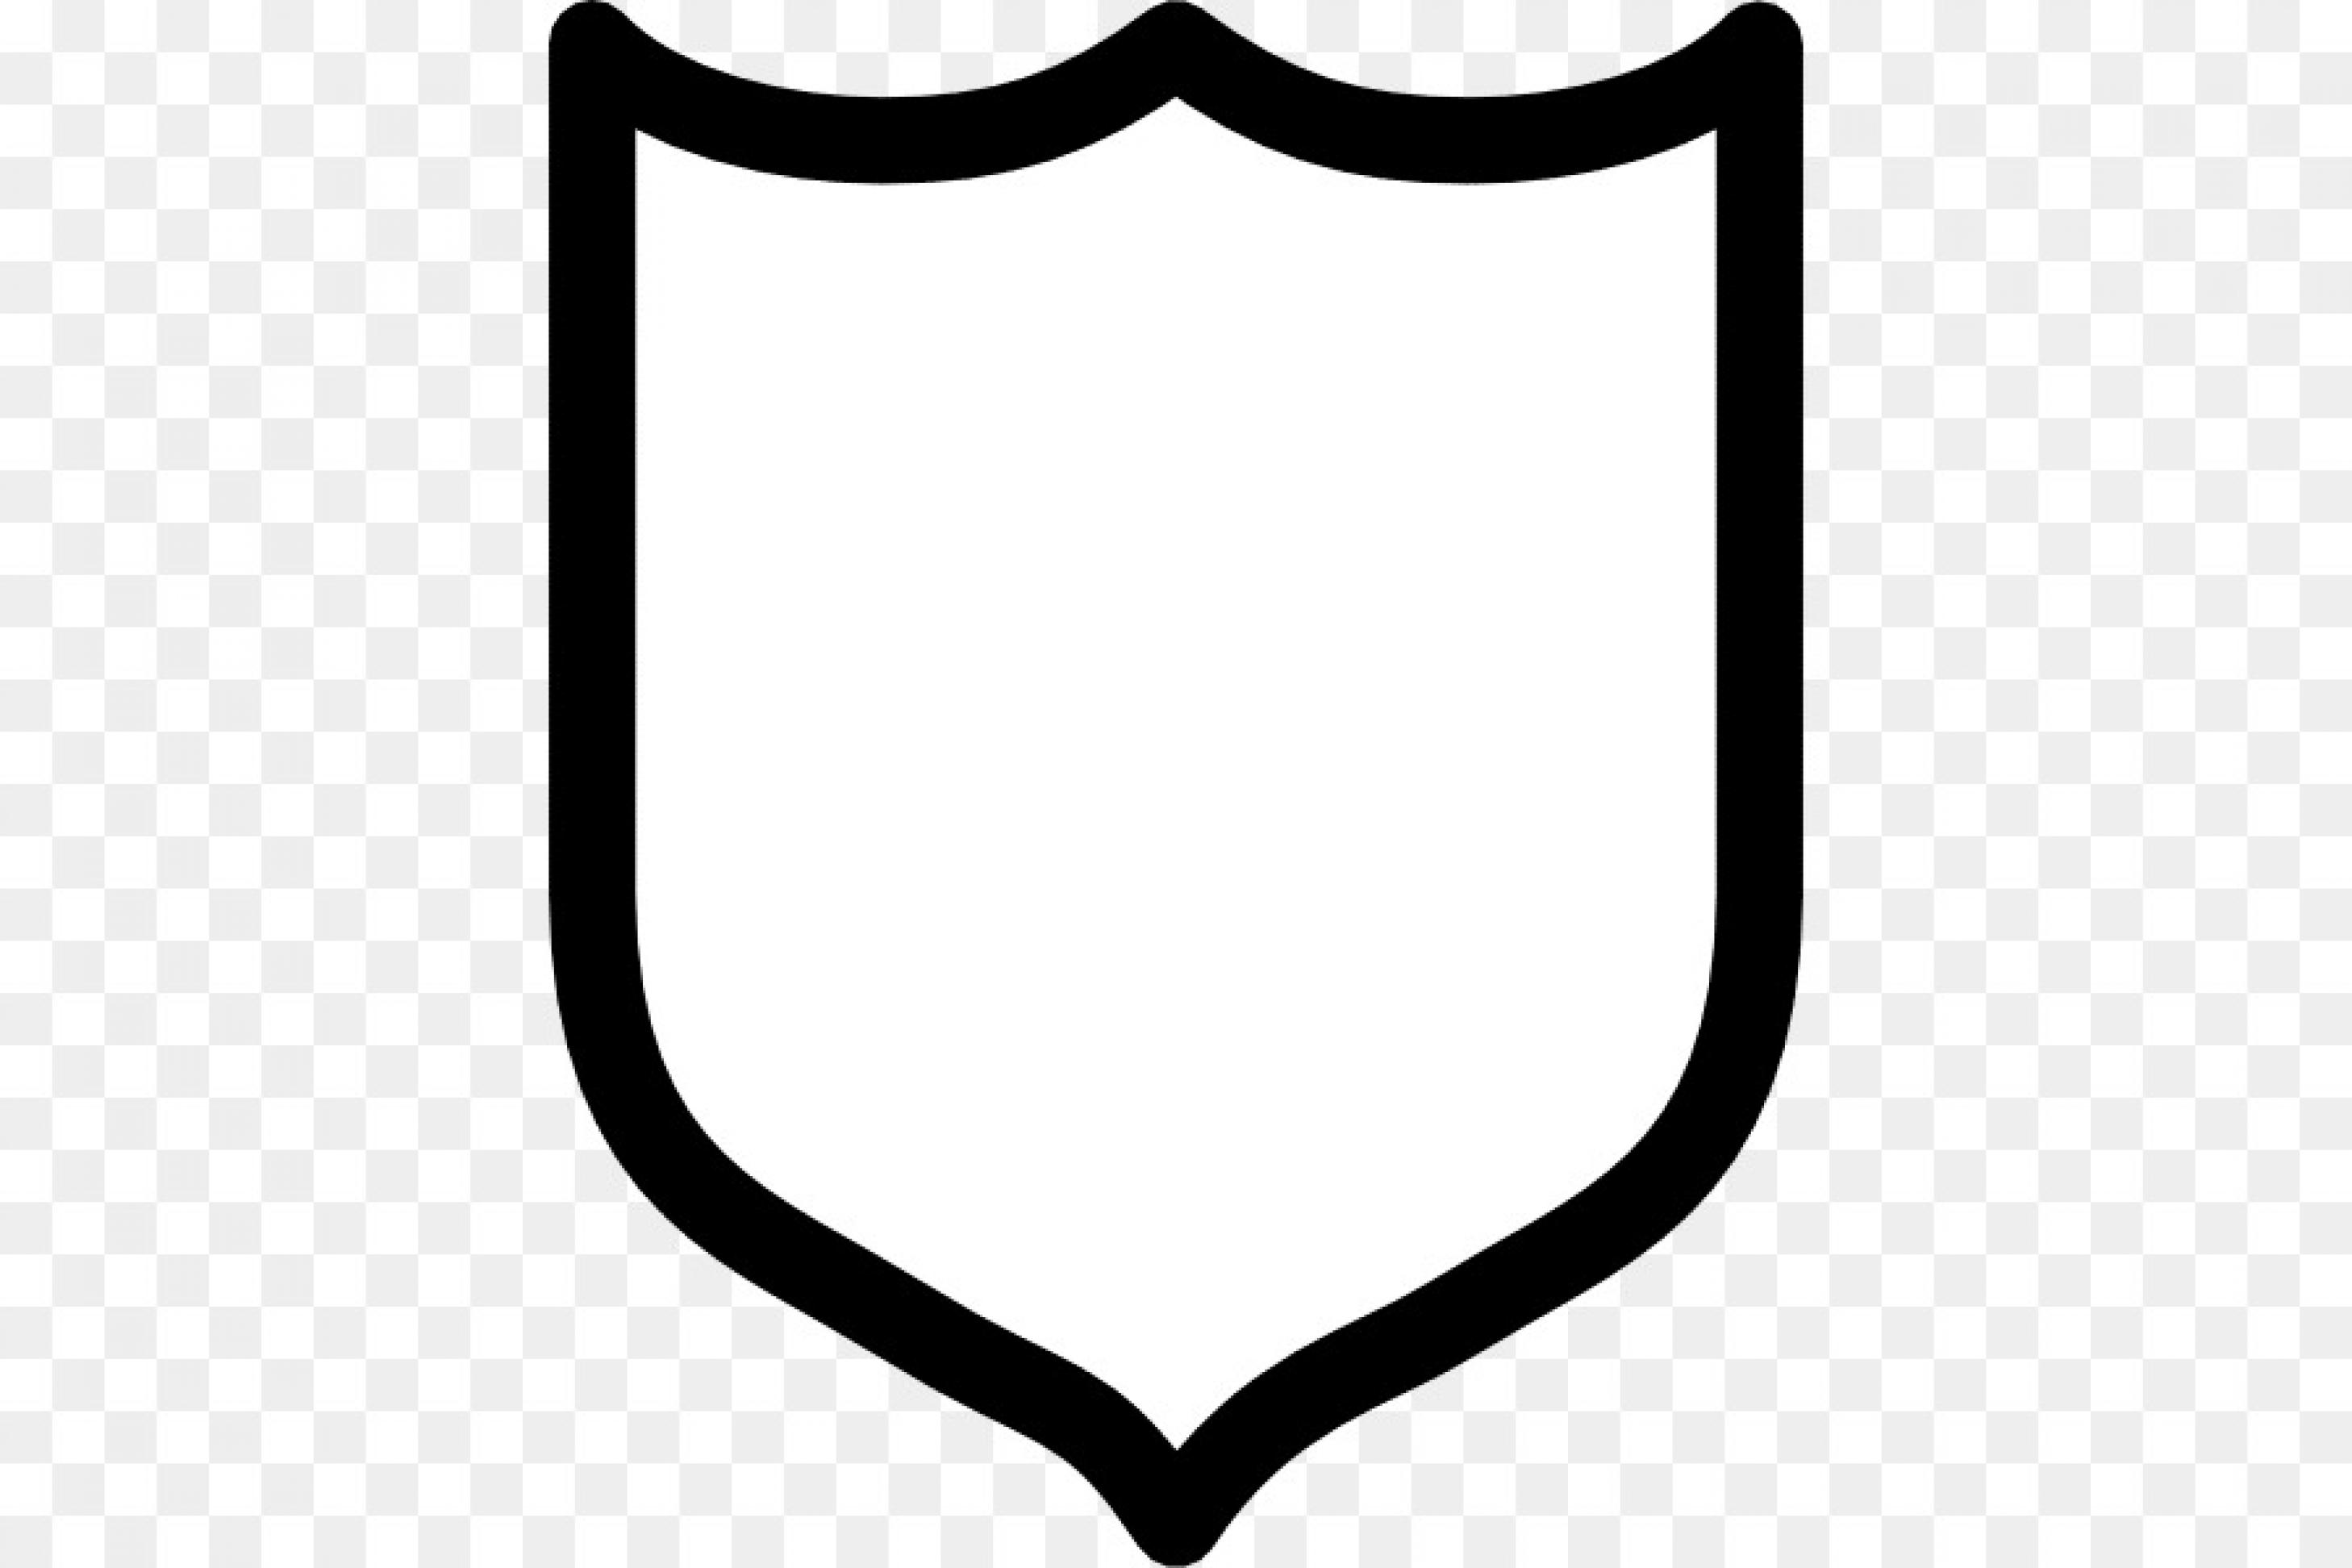 vector royalty free library Crest clip art free. Shield clipart